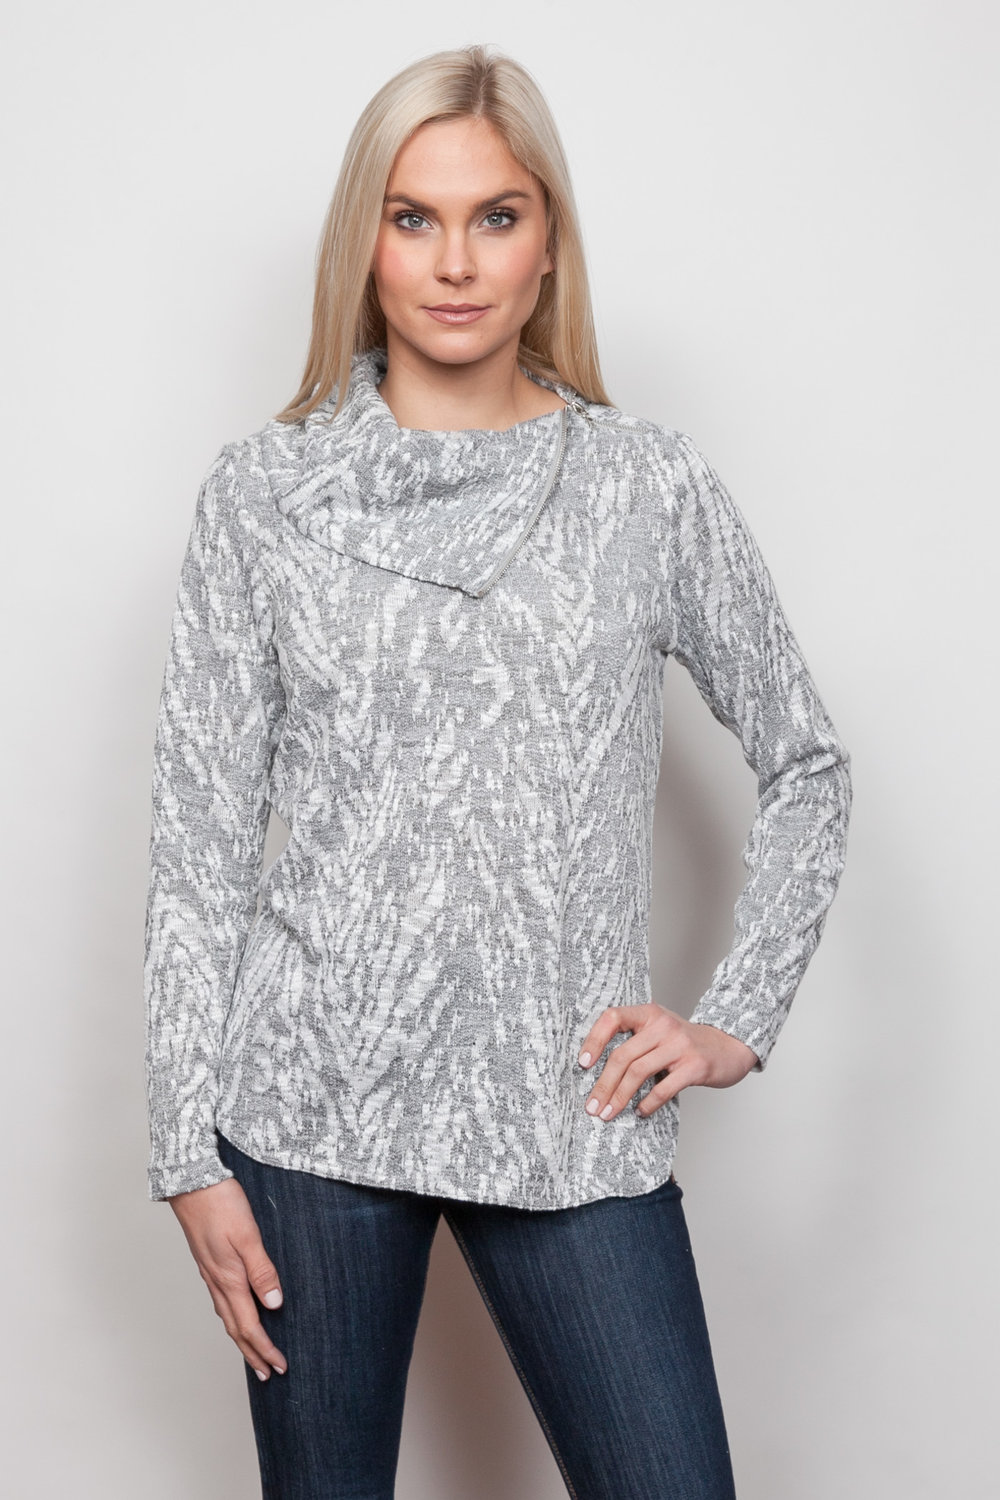 Copy of Style # 39356-18, p 11 </br>Snow Cat French Terry </br>Color: Grey Heather